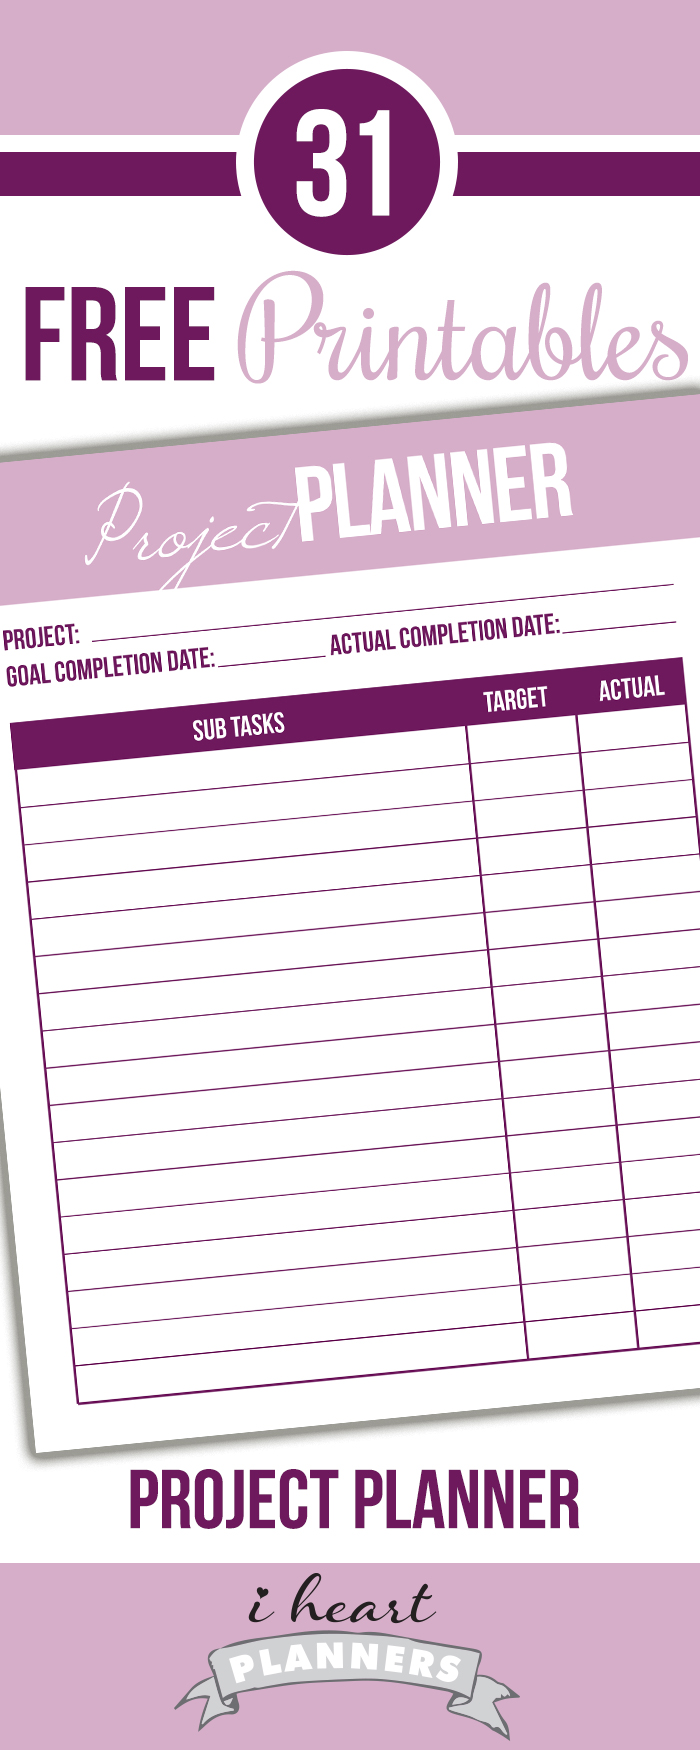 Free printable project planner!